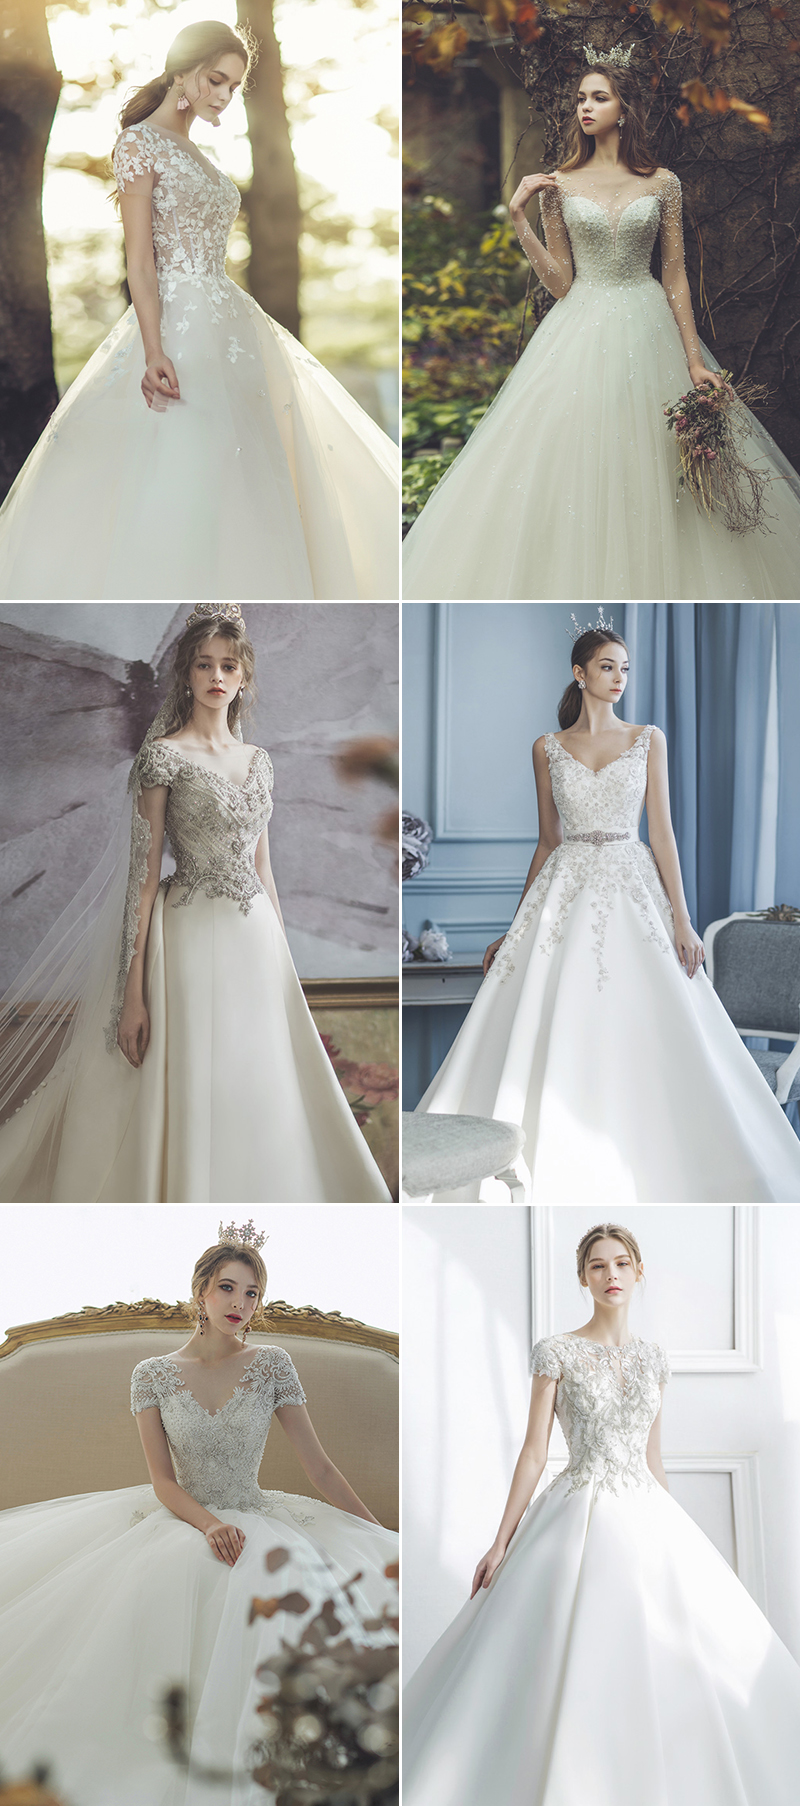 30 Wedding Dresses Featuring A Contemporary Take On Princess Ball Gowns Praise Wedding